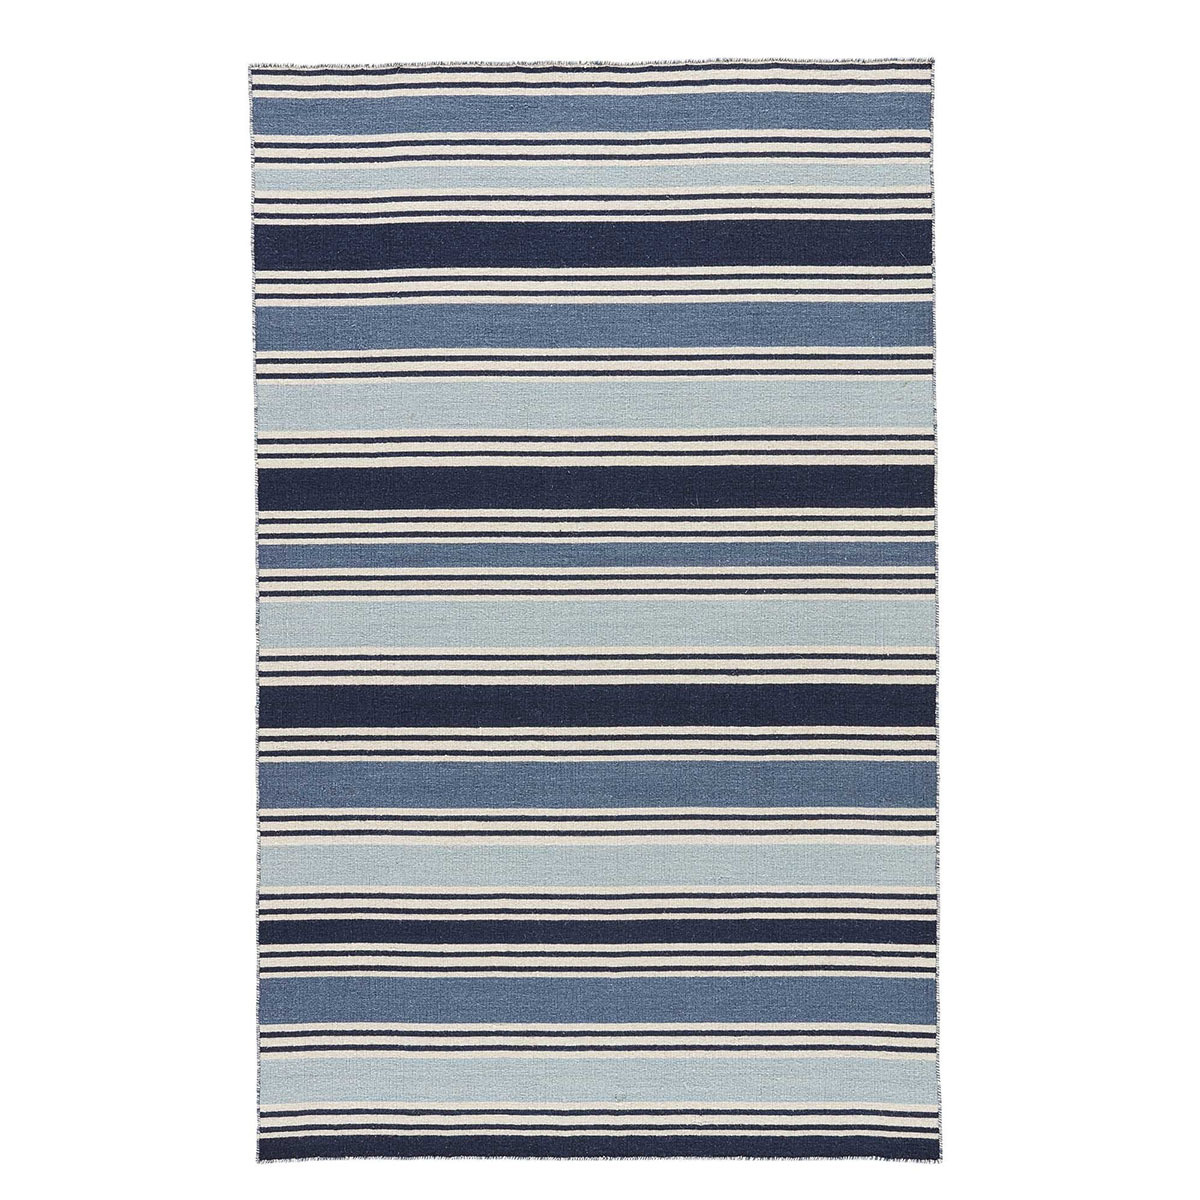 Coastal-inspired wool rug designed with a variety of blue tones. photo